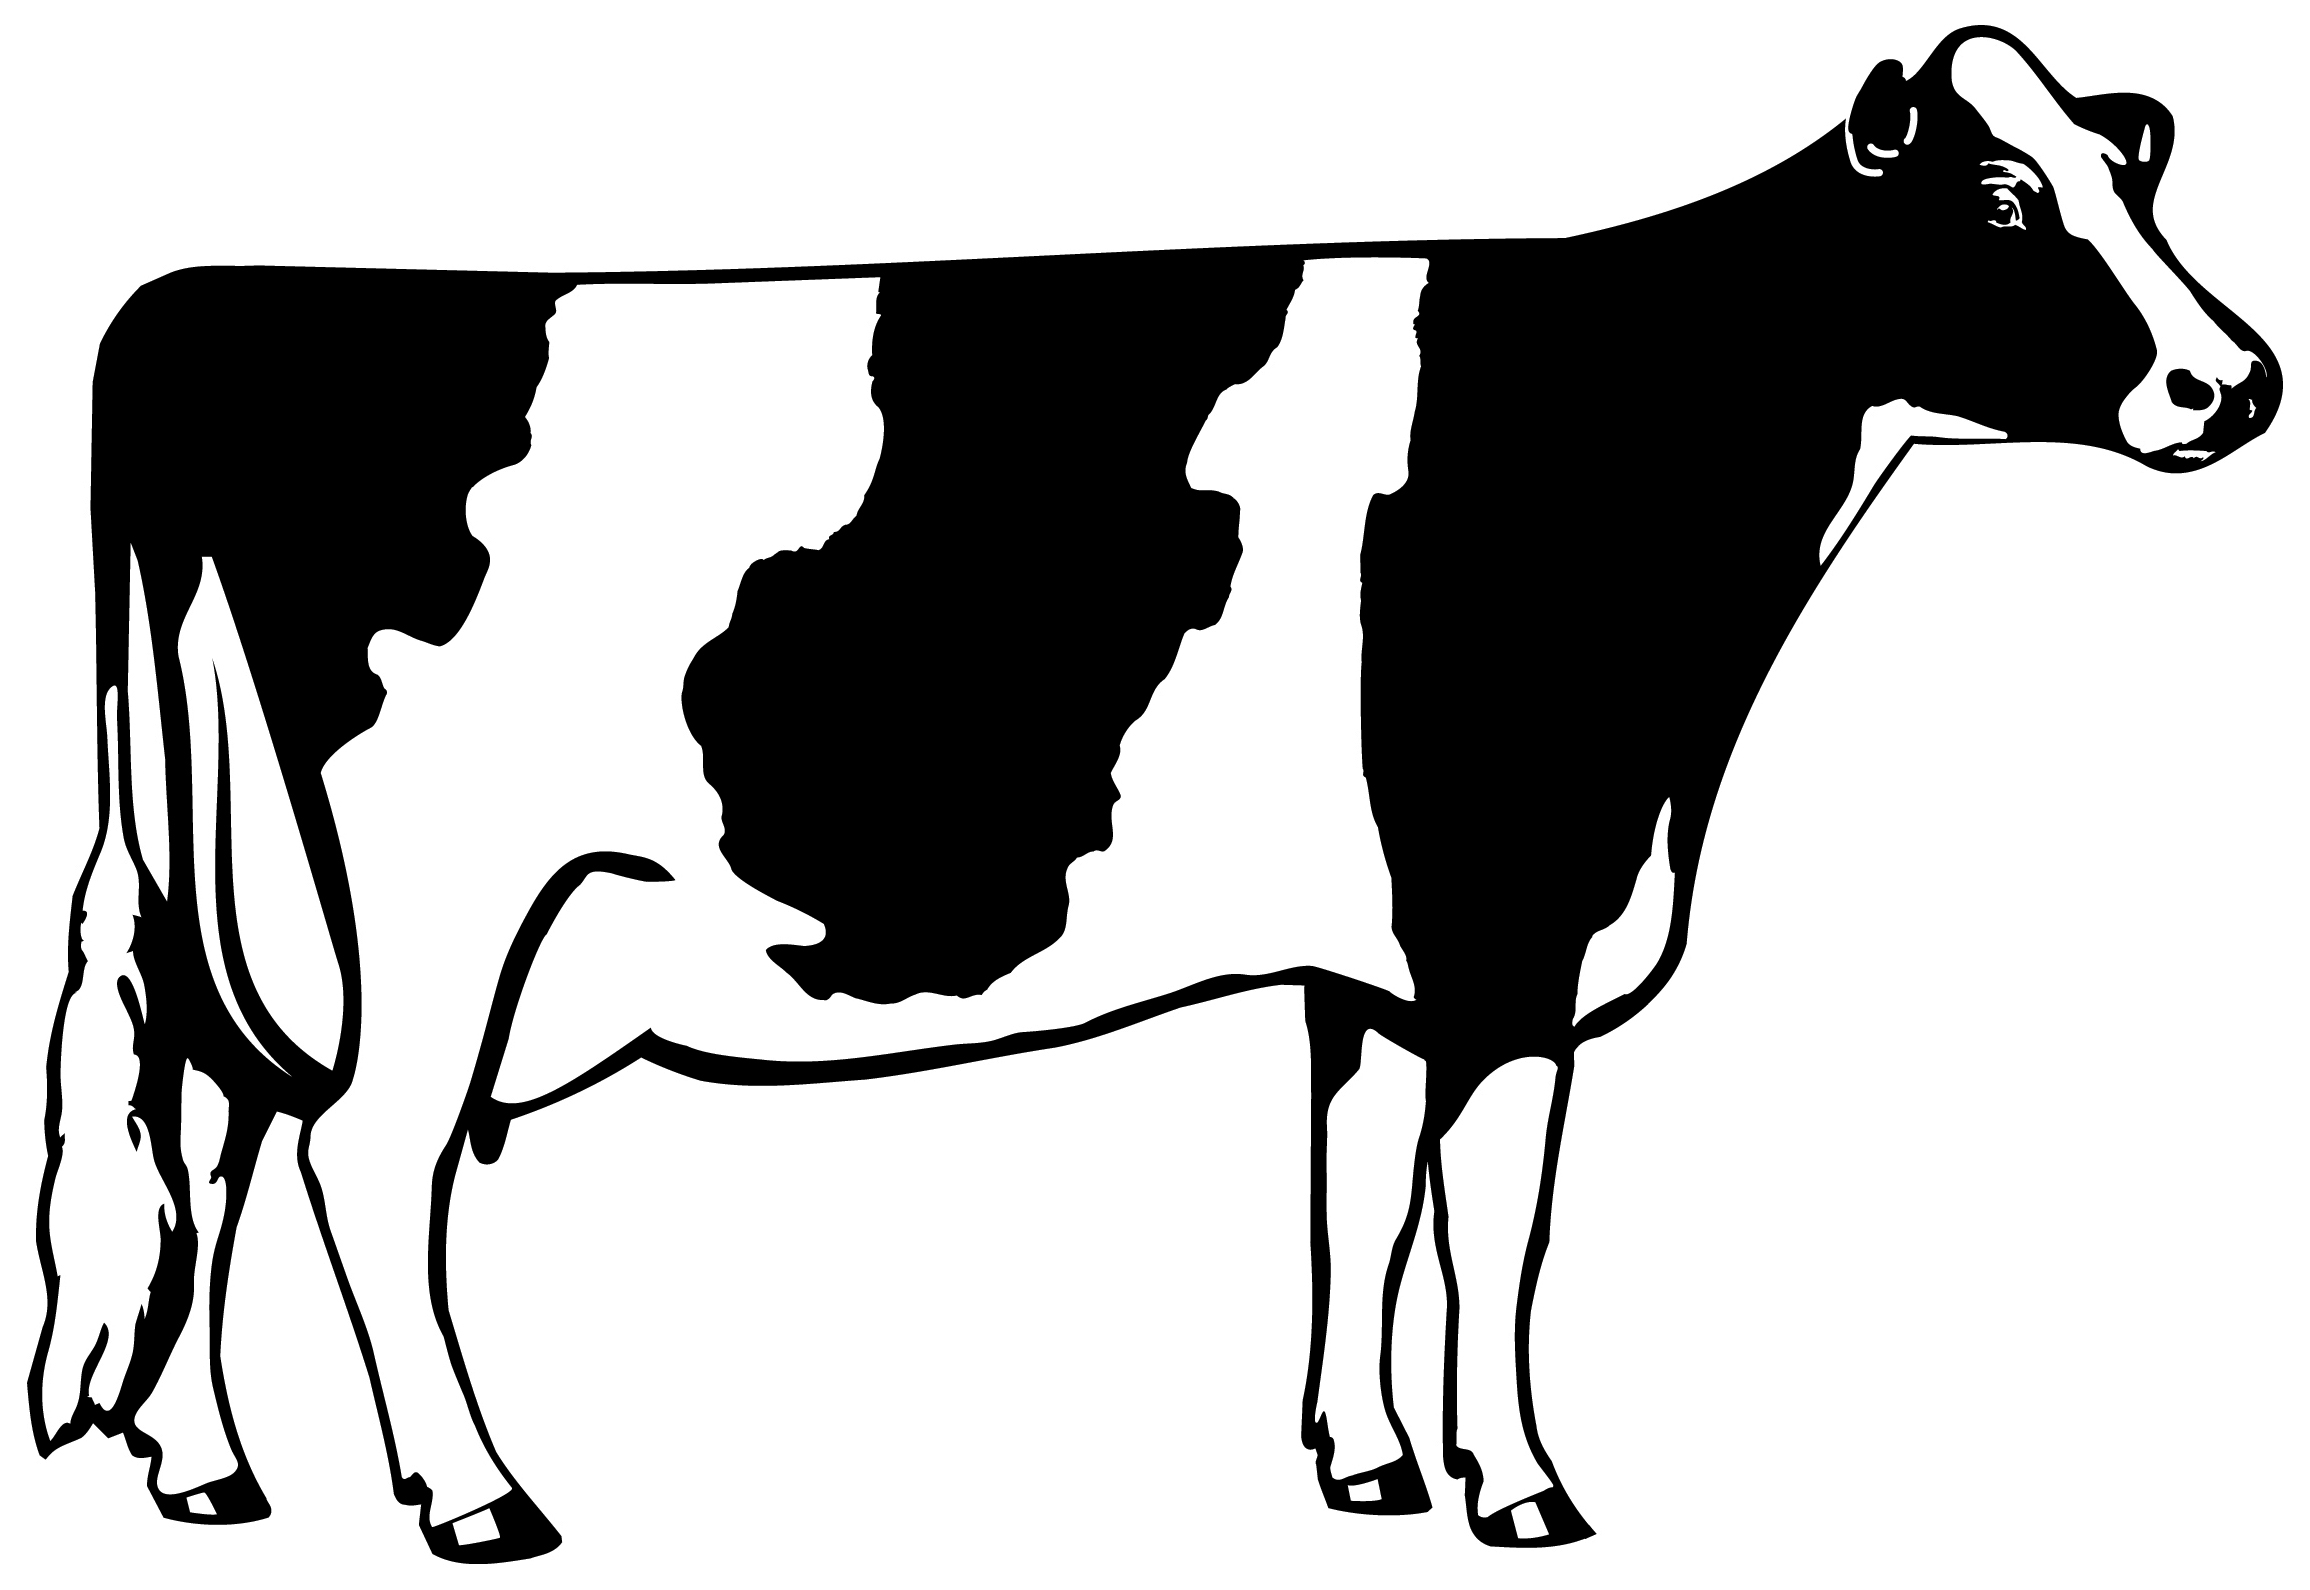 cattle silhouette clip art at getdrawings com free for personal rh getdrawings com crow clip art free crow clipart